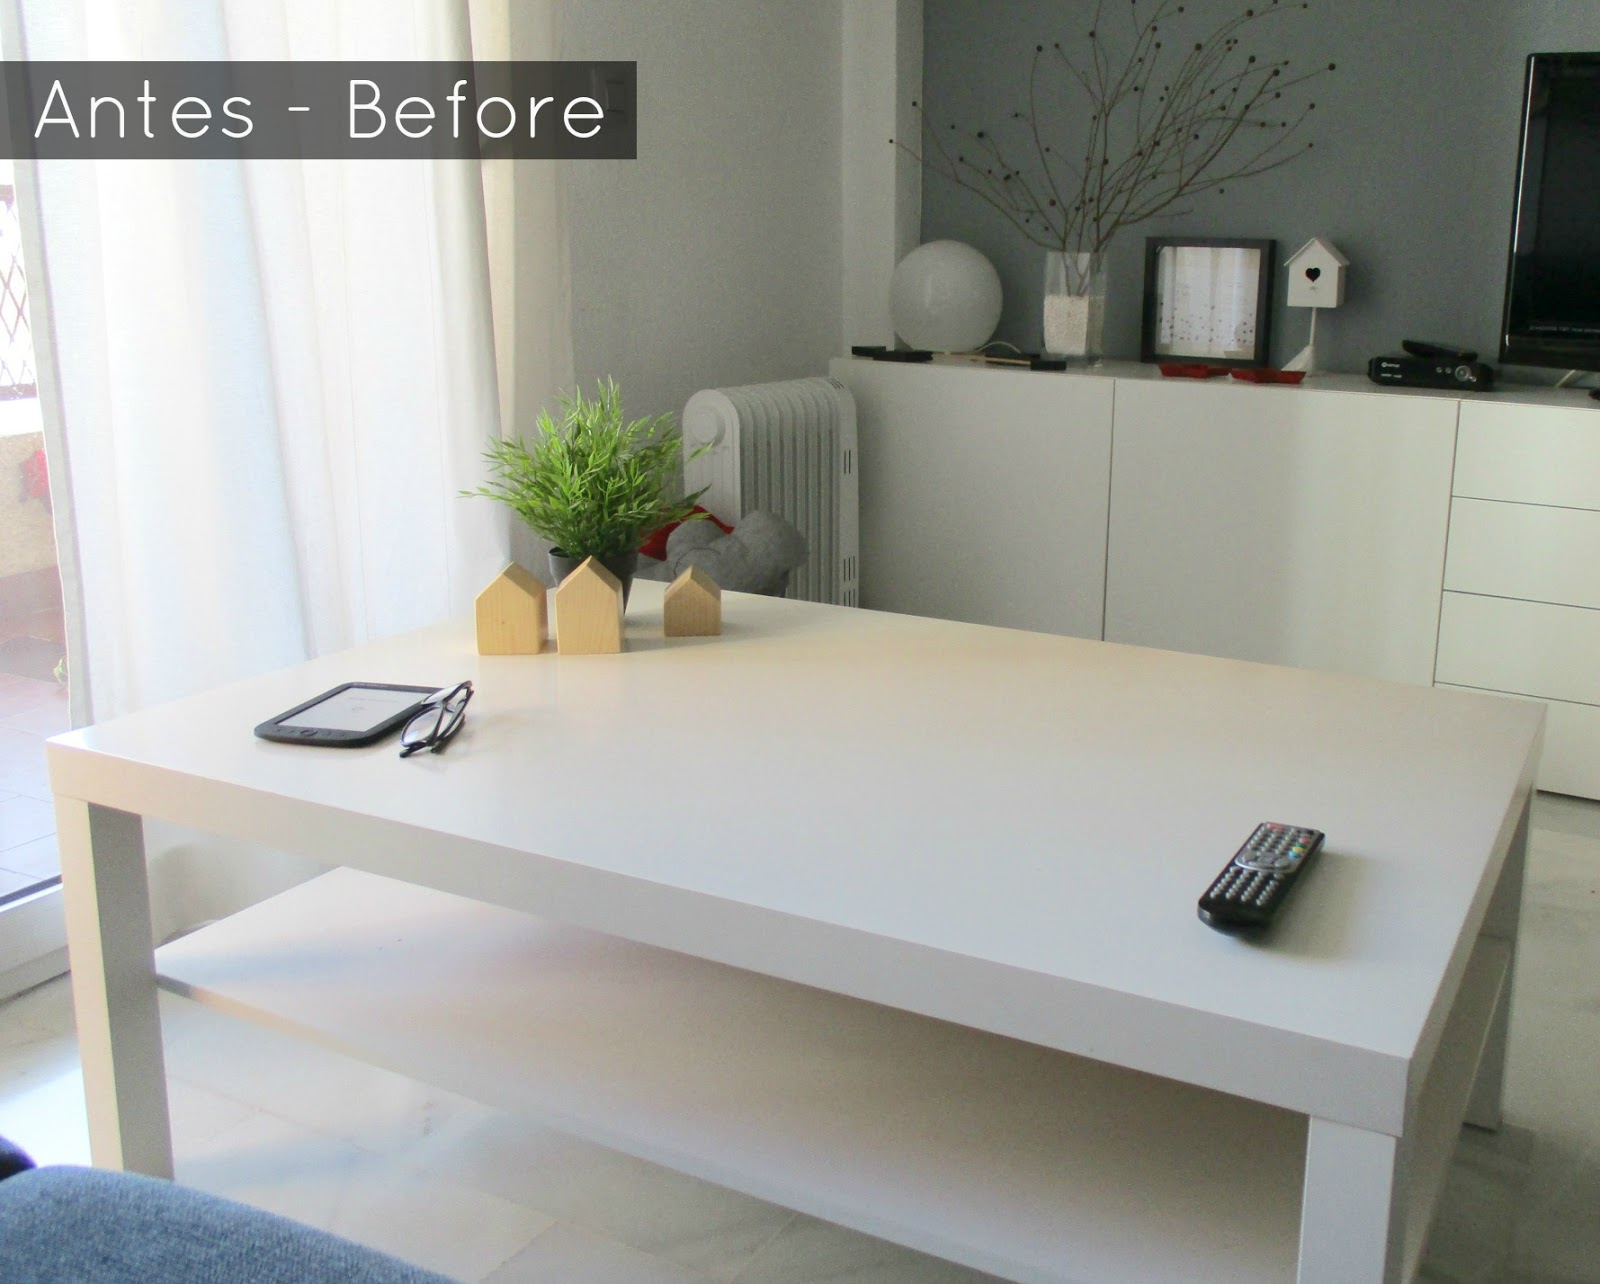 La buhardilla decoraci n dise o y muebles antes y - Ideas decoracion ikea ...